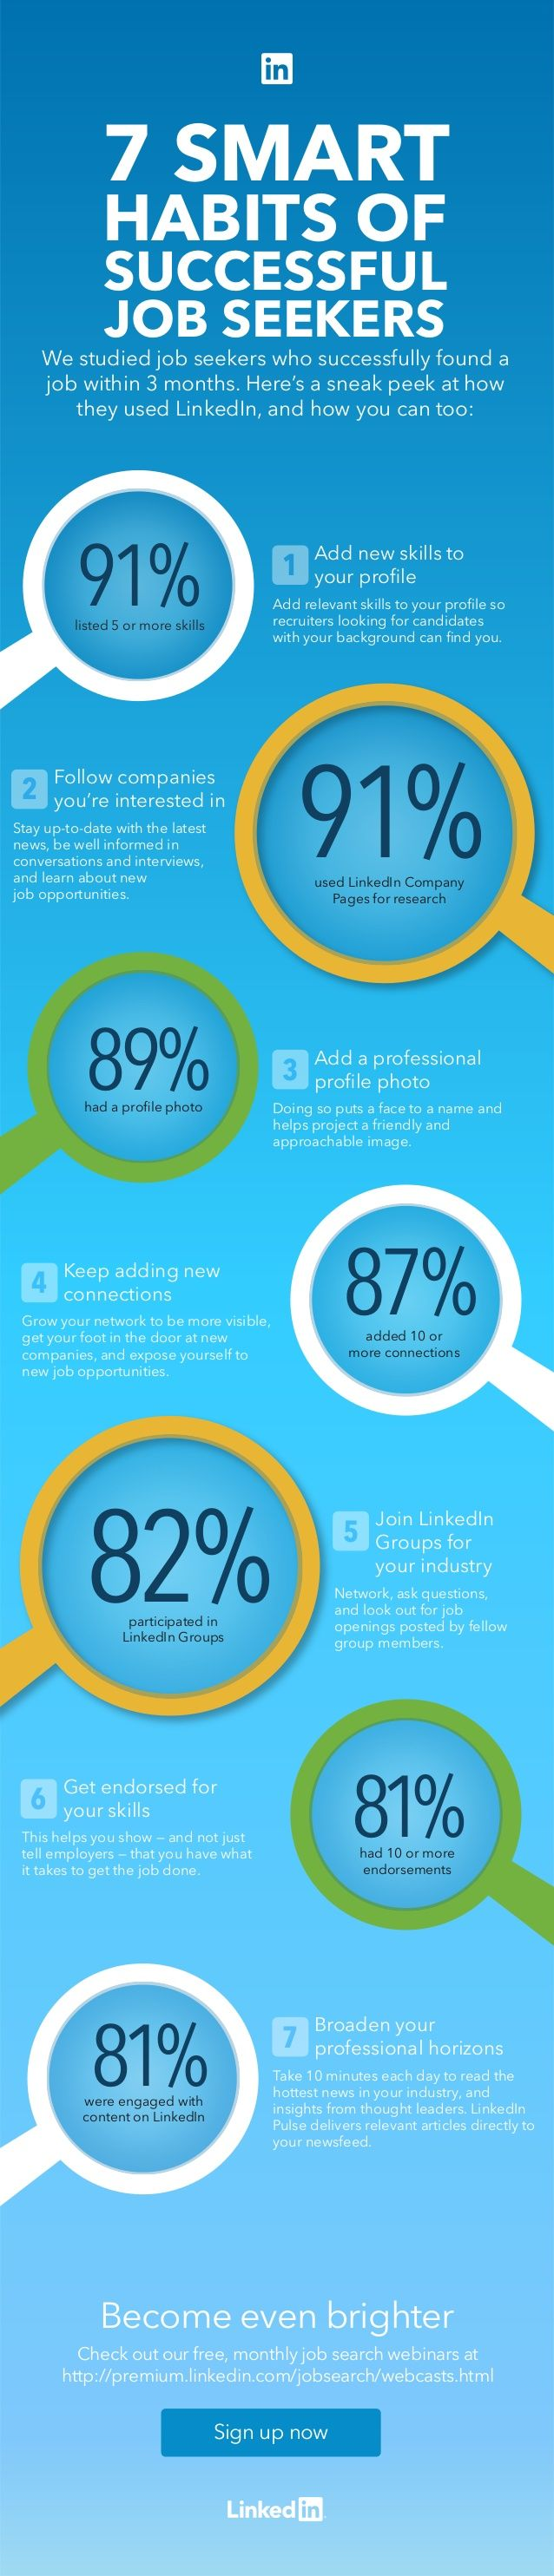 7 Smart Habits of Successful Job Seekers by LinkedIn [Infographic] #linkedin #smm #socialmedia